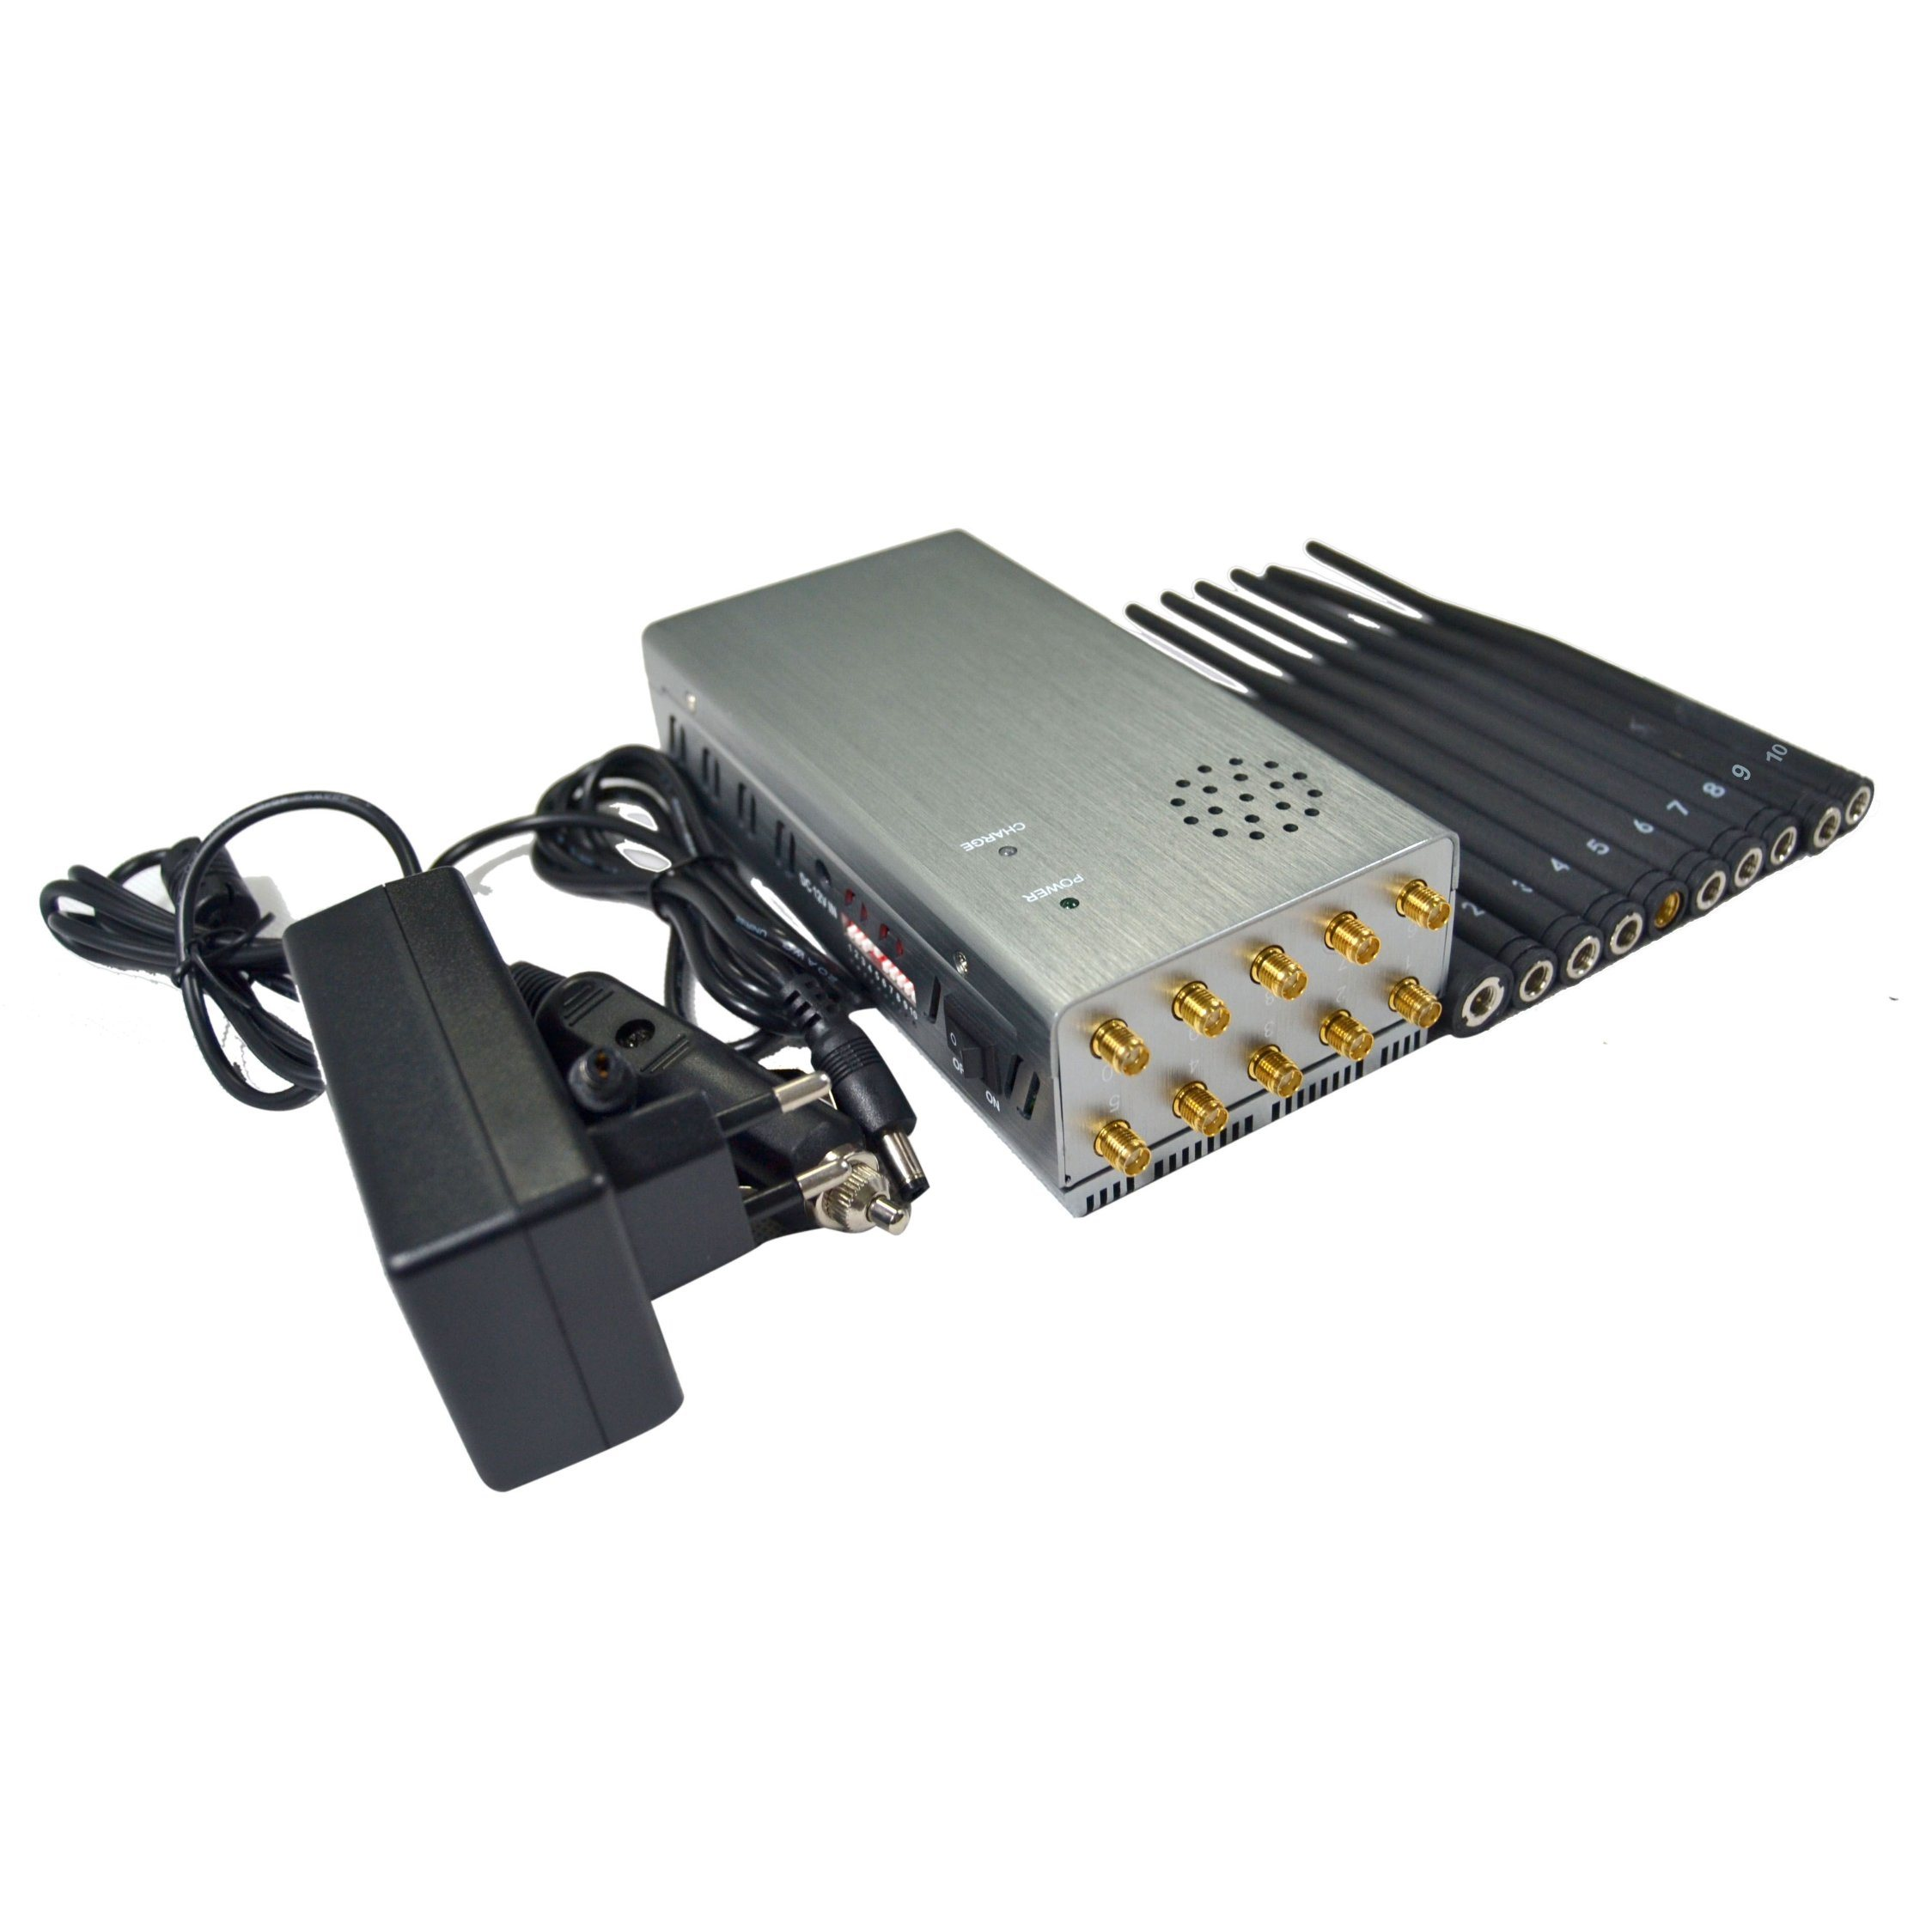 mobile phone blocker North Little Rock - China The King of Portable Jammers with 8000mA and 10 Antennas Including 2g 3G 4G 5g GPS 433MHz315MHz868MHz WiFi - China 8000mA Battery Jammer, Large Volume Power Signal Blocker